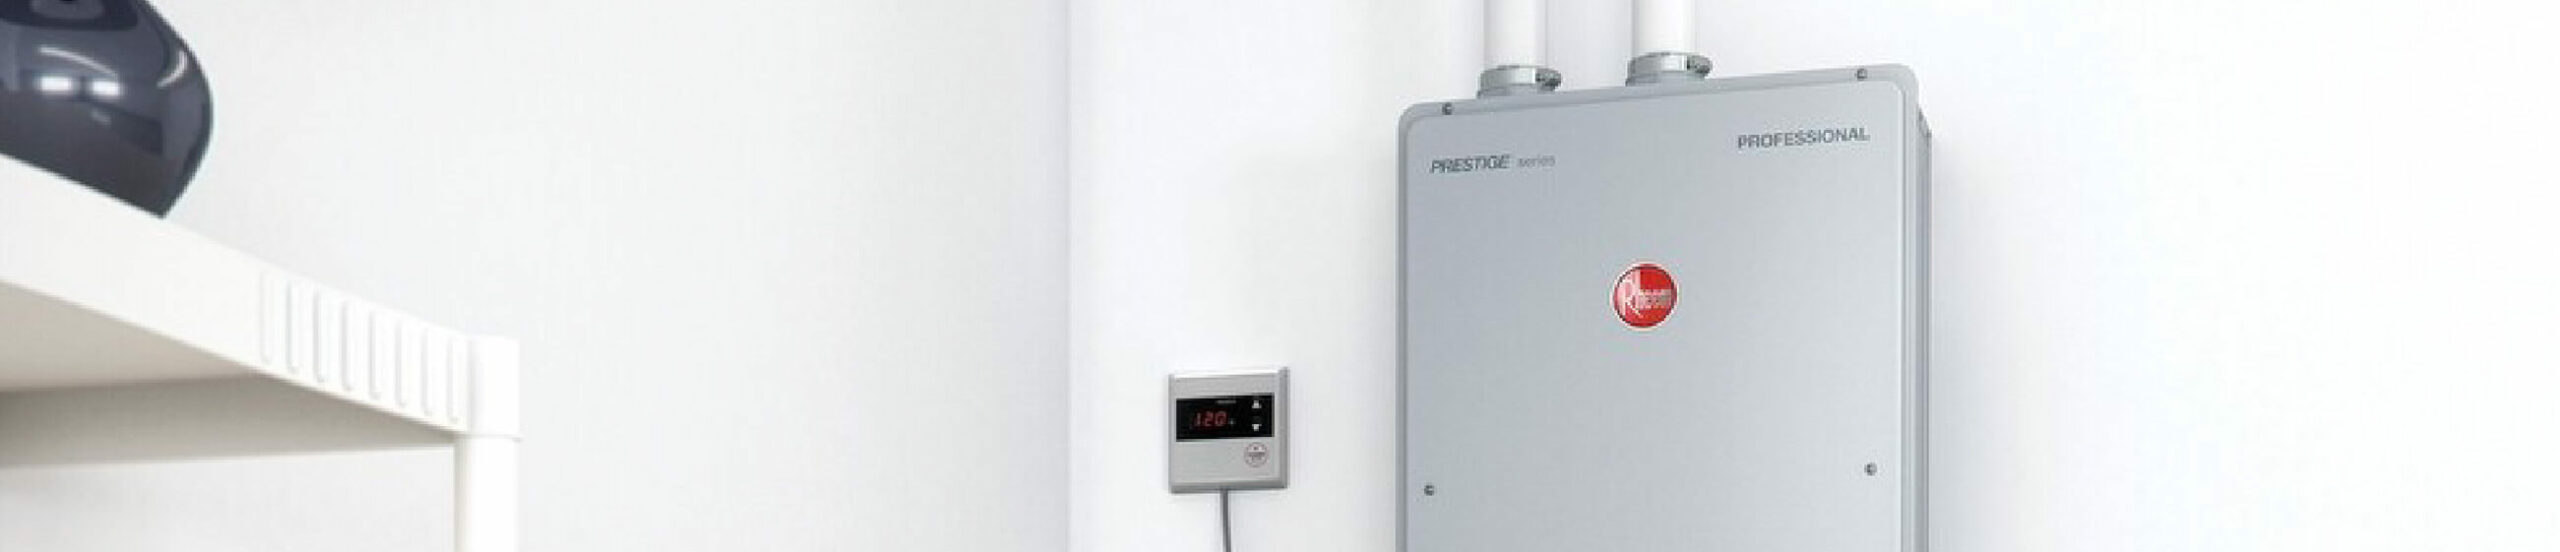 Rheem Tankless Water Heater on the wall of a home